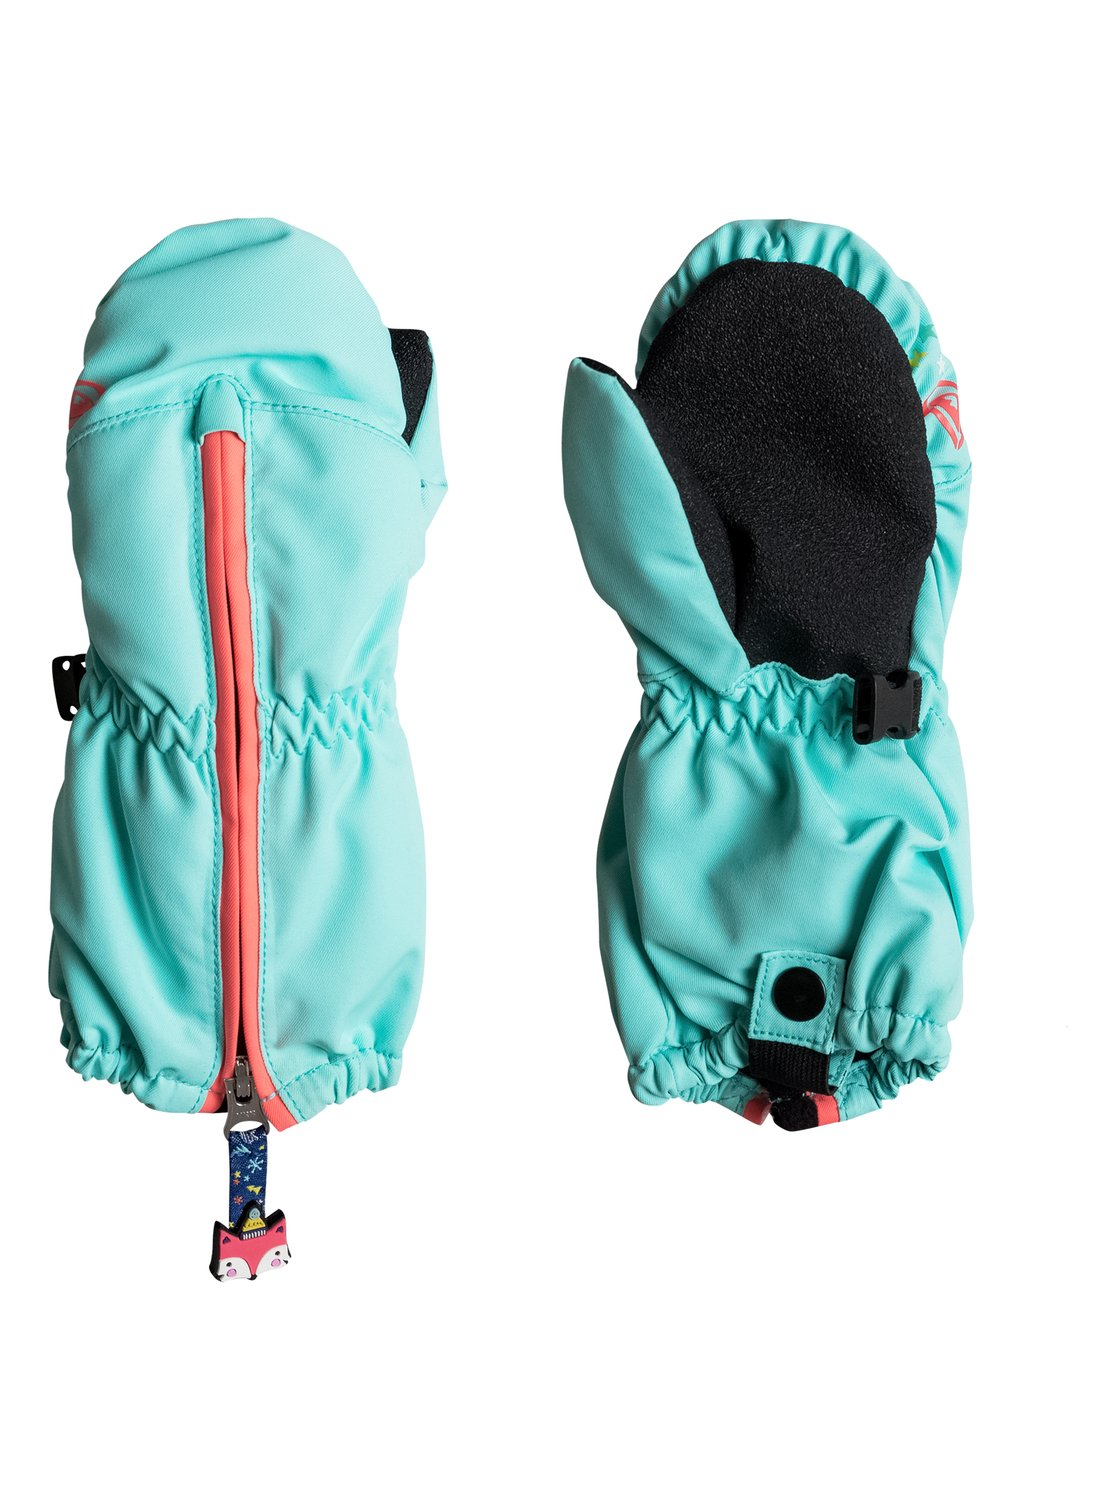 Snow's Up - Moufles de snowboard/ski pour Fille - Roxy